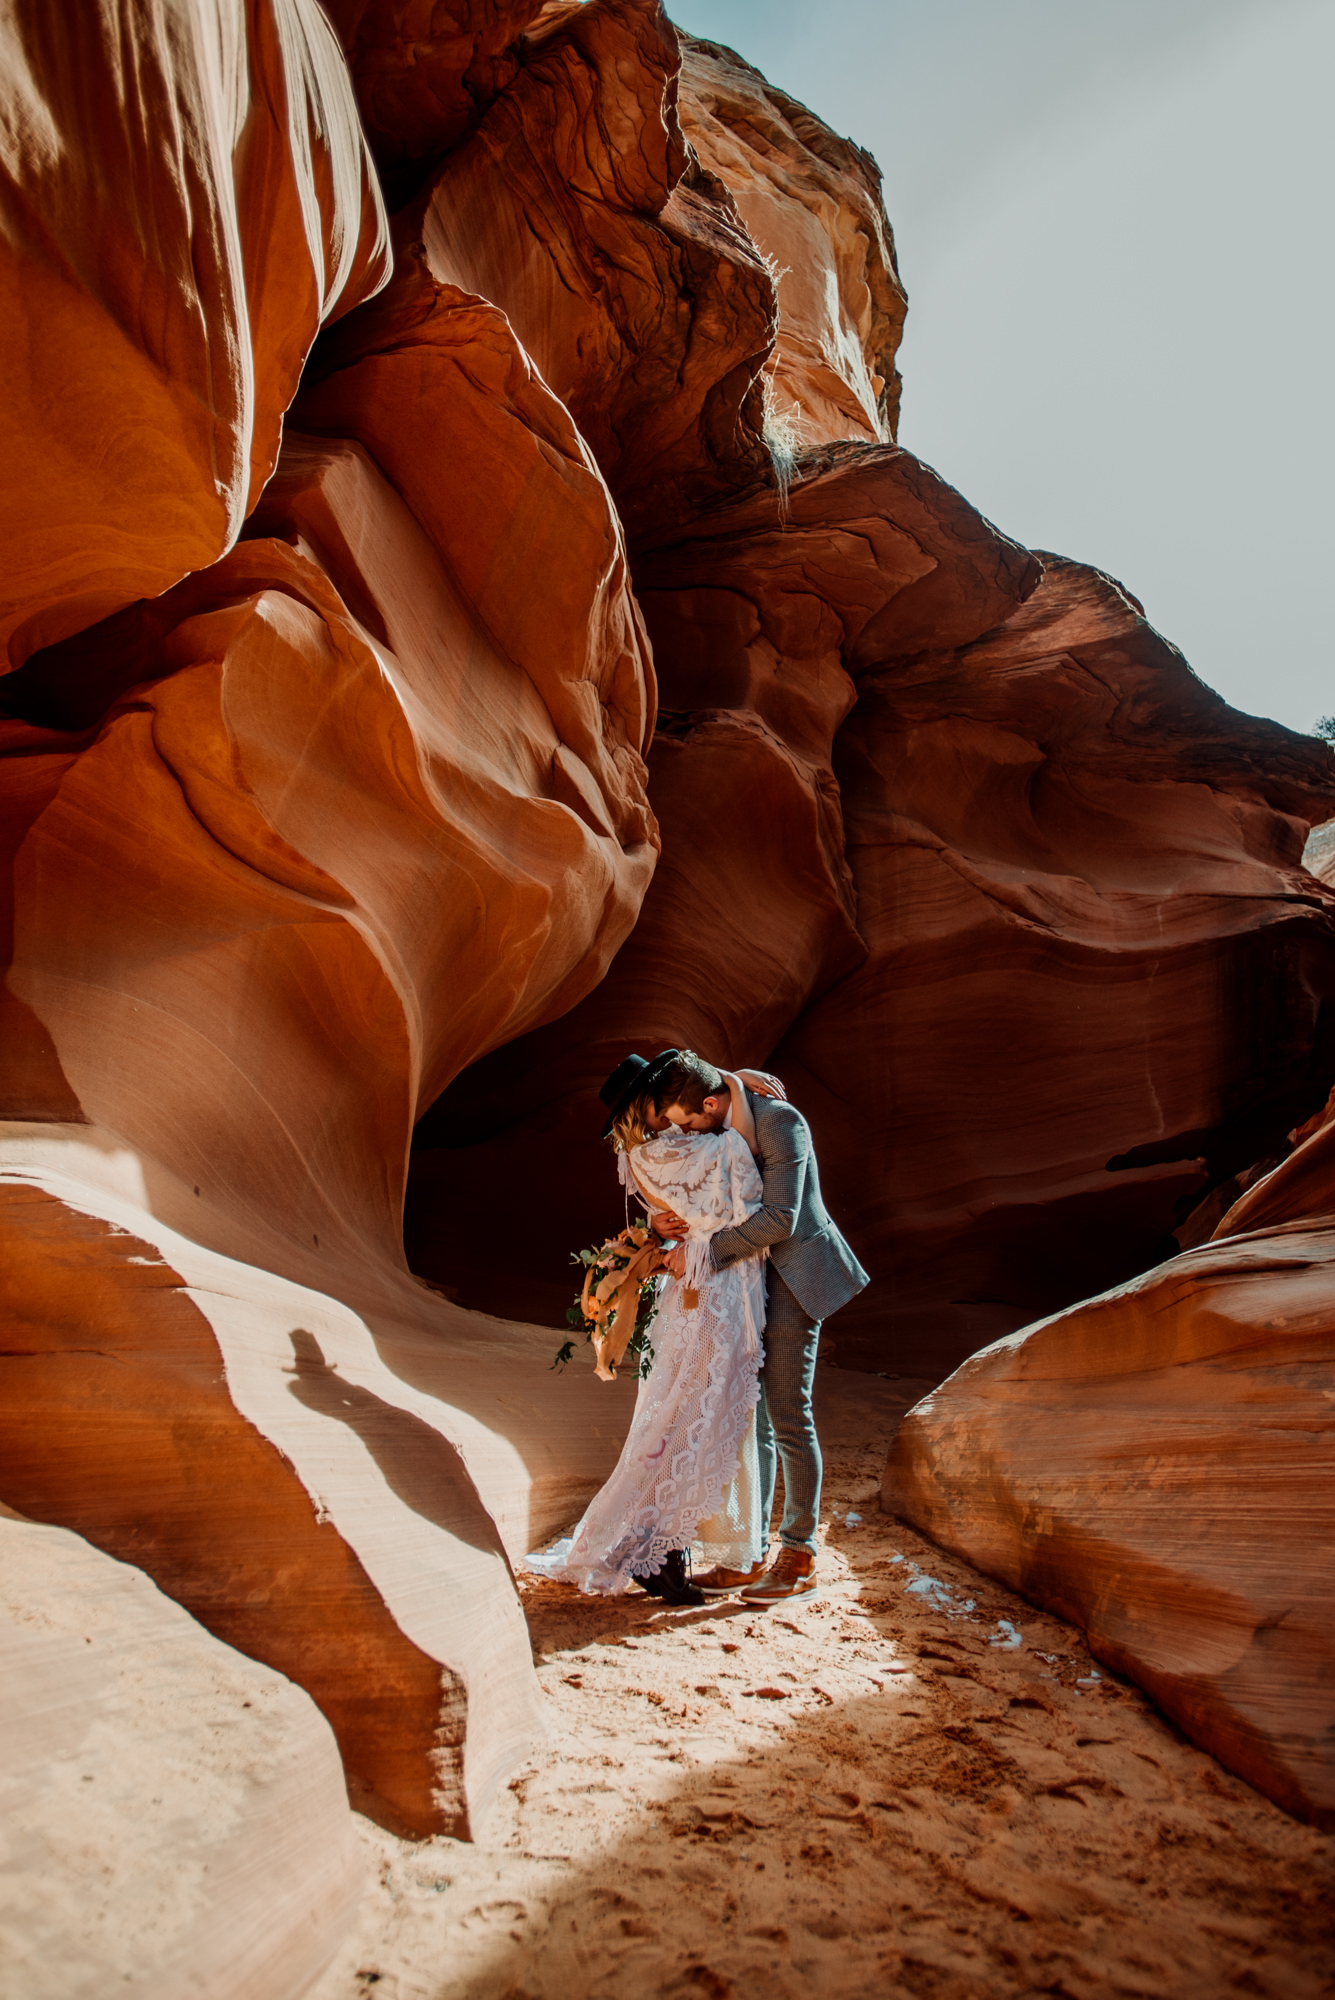 Photographing in the canyons was so dynamic- it was so exciting to play with all of the lighting possibilities.